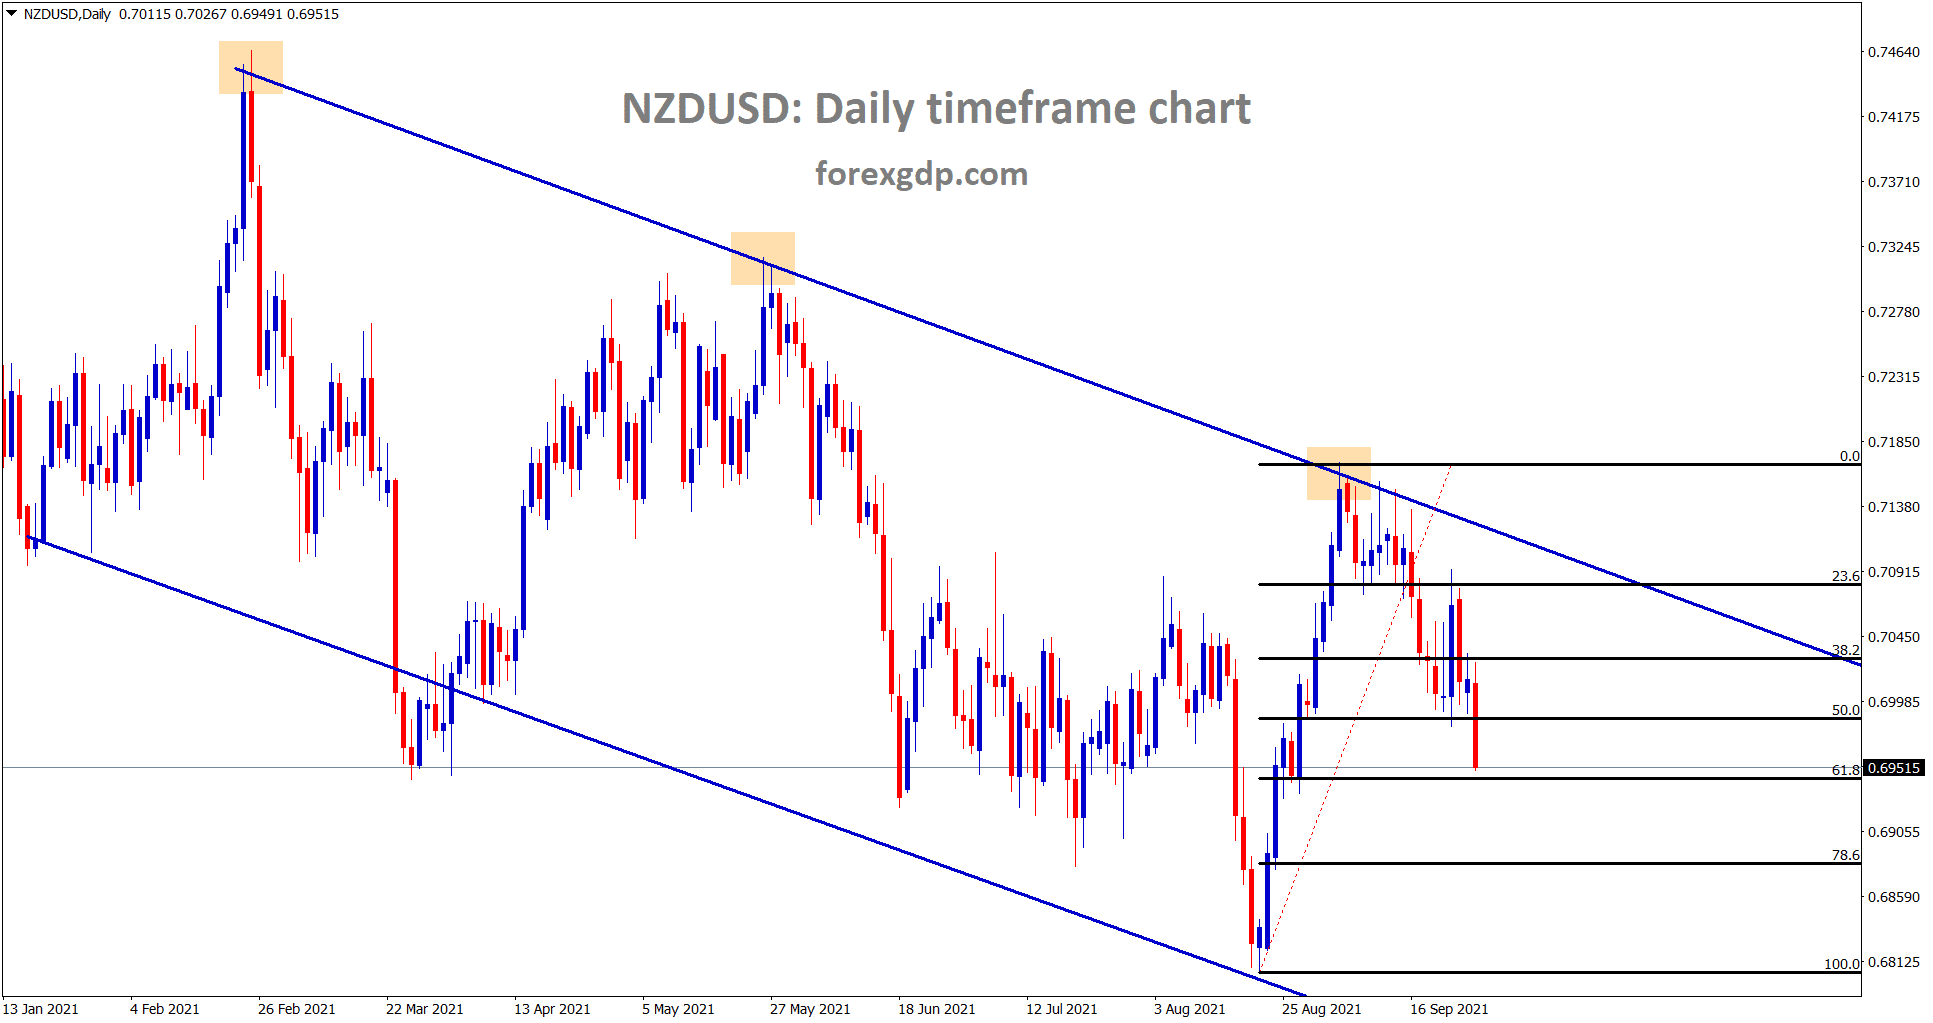 NZDUSD is moving in a descending channel falling towards the 61 retracement area